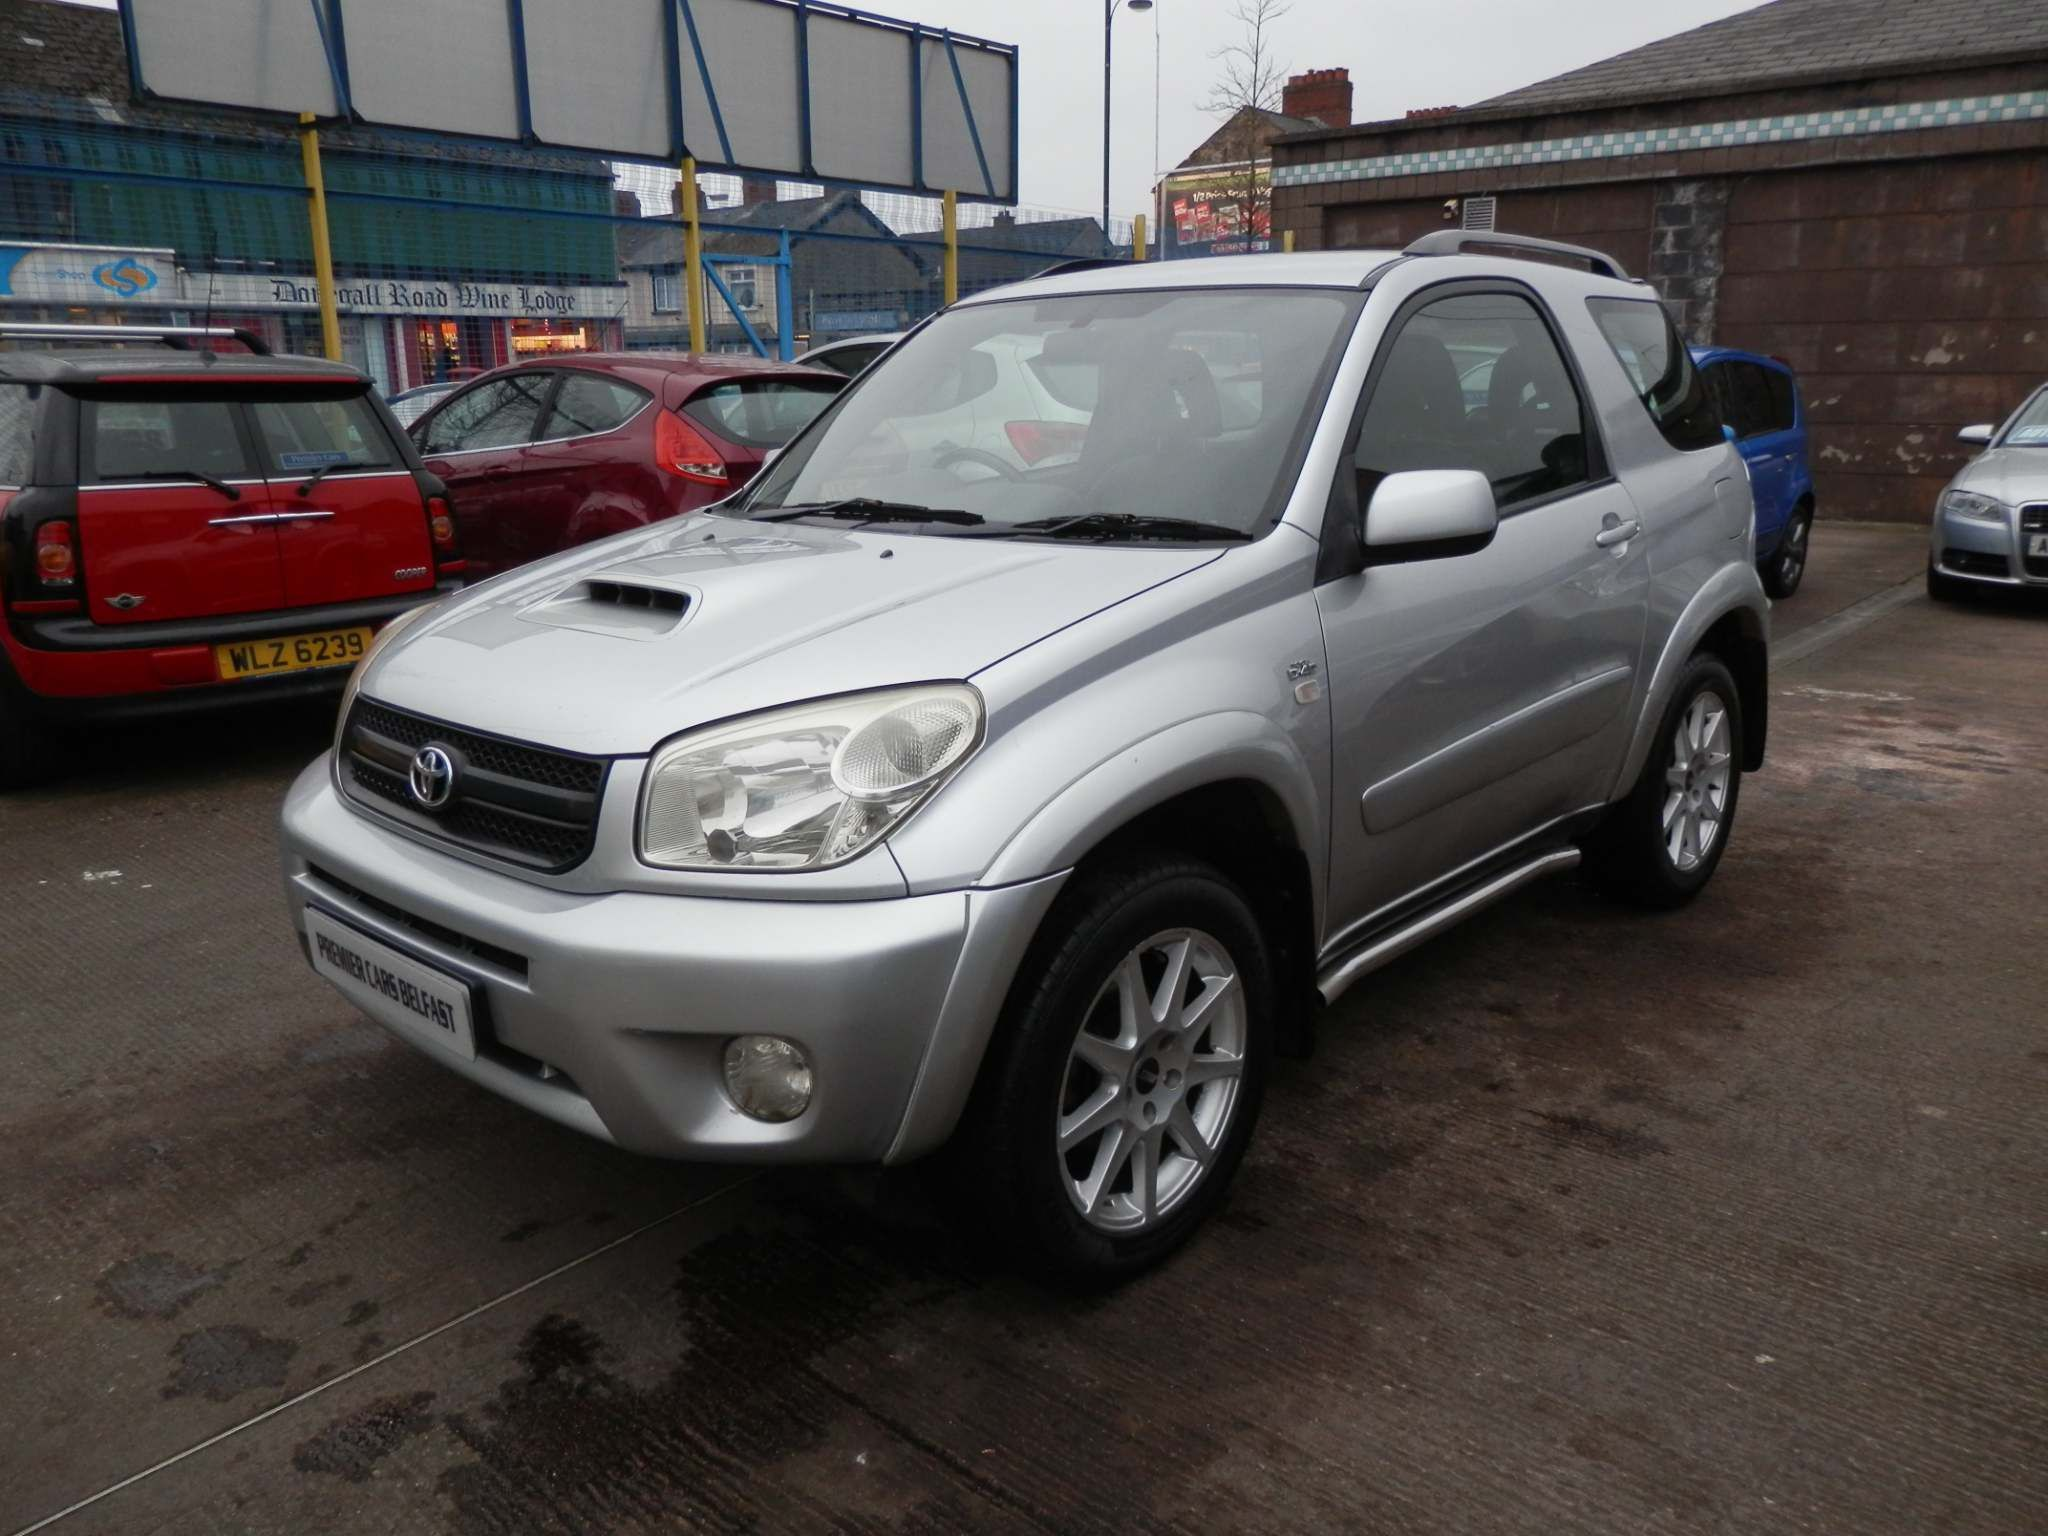 2005 TOYOTA RAV4 2.0 D-4D Granite 4WD Diesel Manual New clucth just fitted – Premier Cars Belfast Belfast full